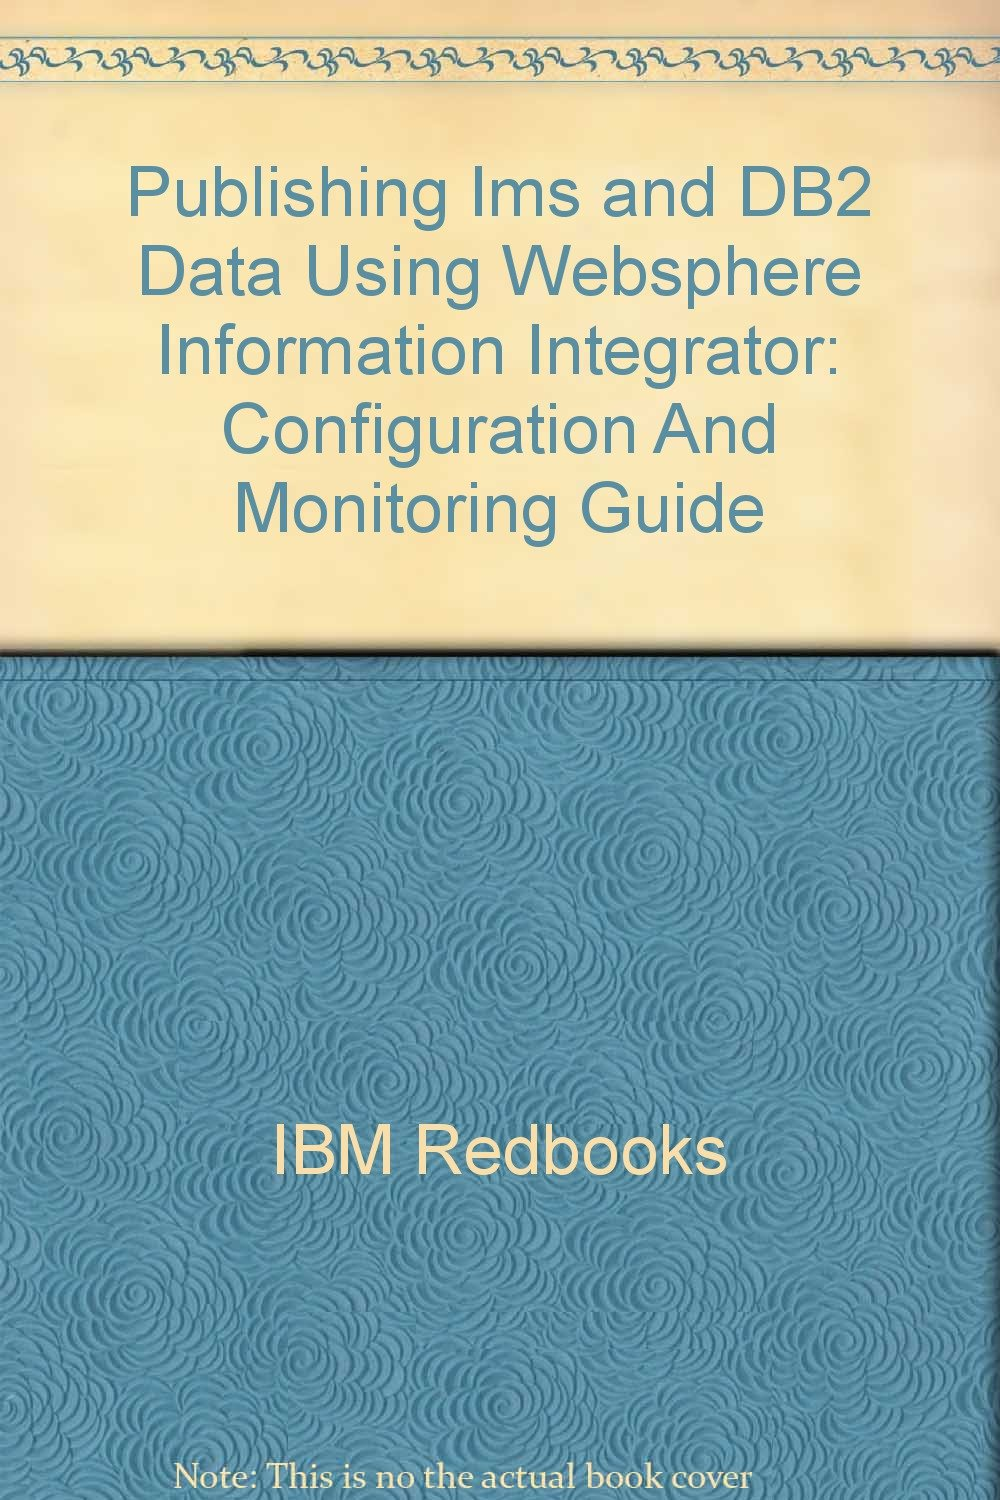 Publishing Ims and DB2 Data Using Websphere Information Integrator: Configuration And Monitoring Guide